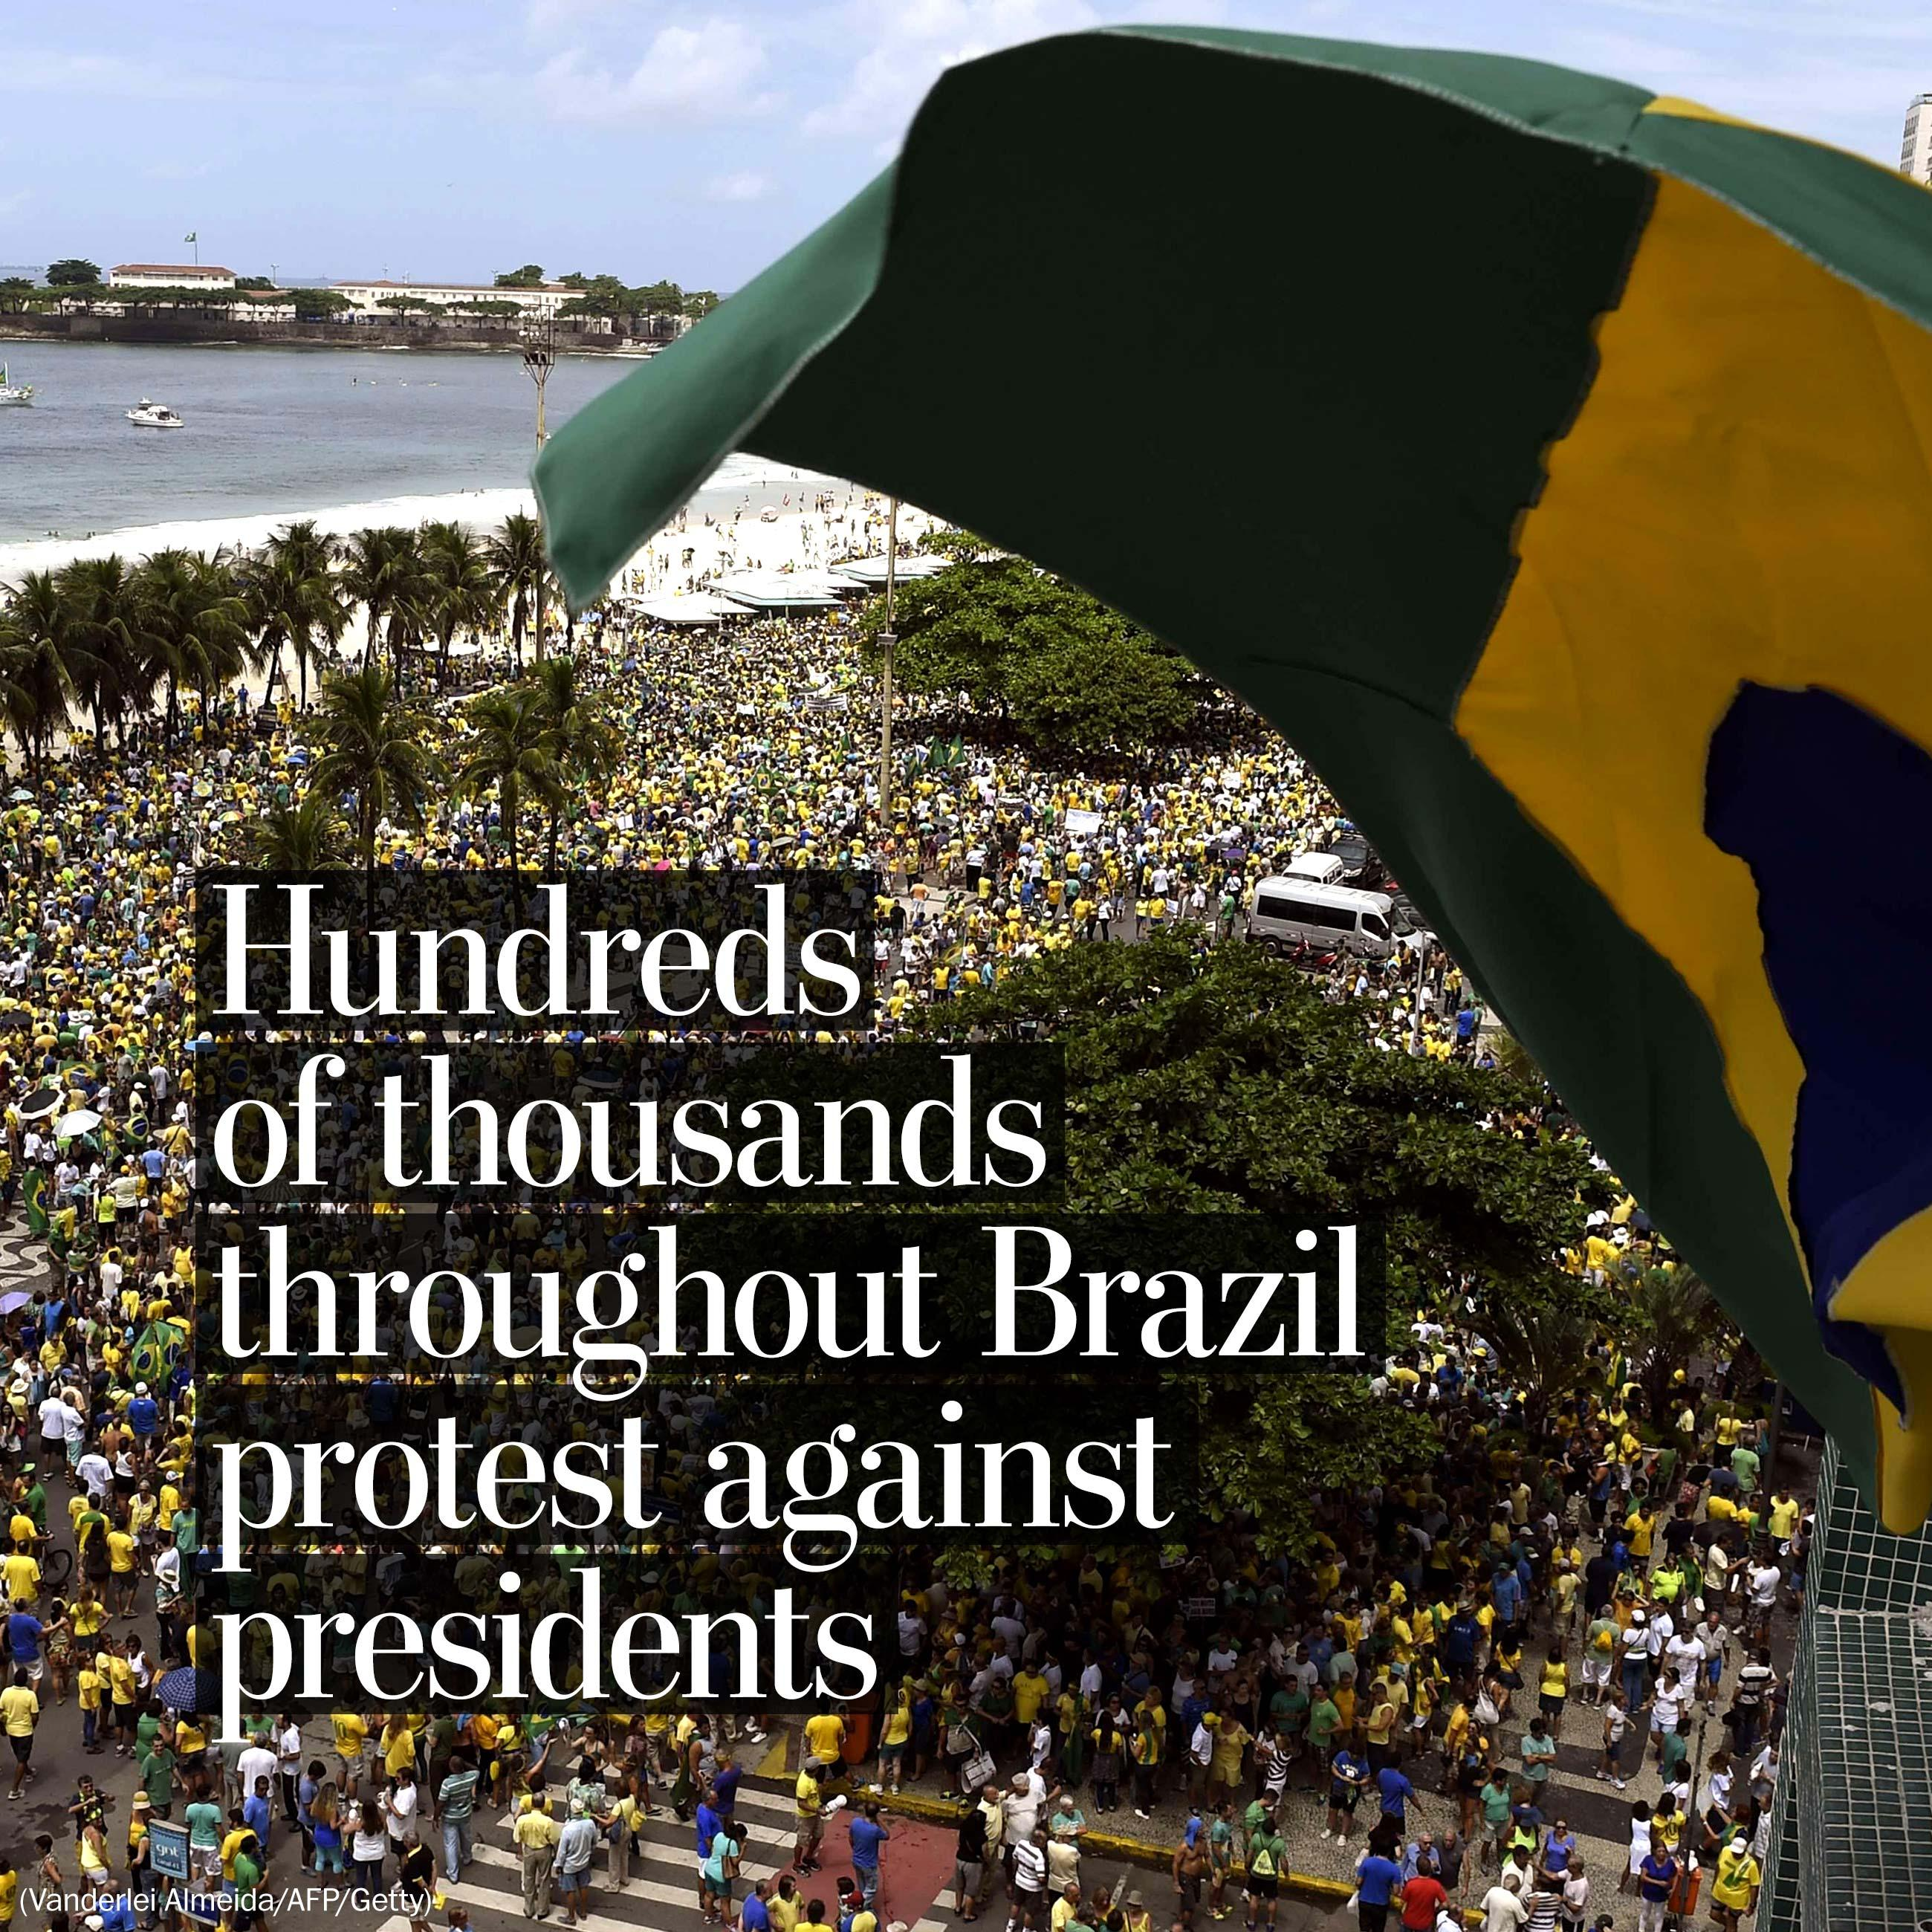 Hundreds of thousands protest throughout Brazil